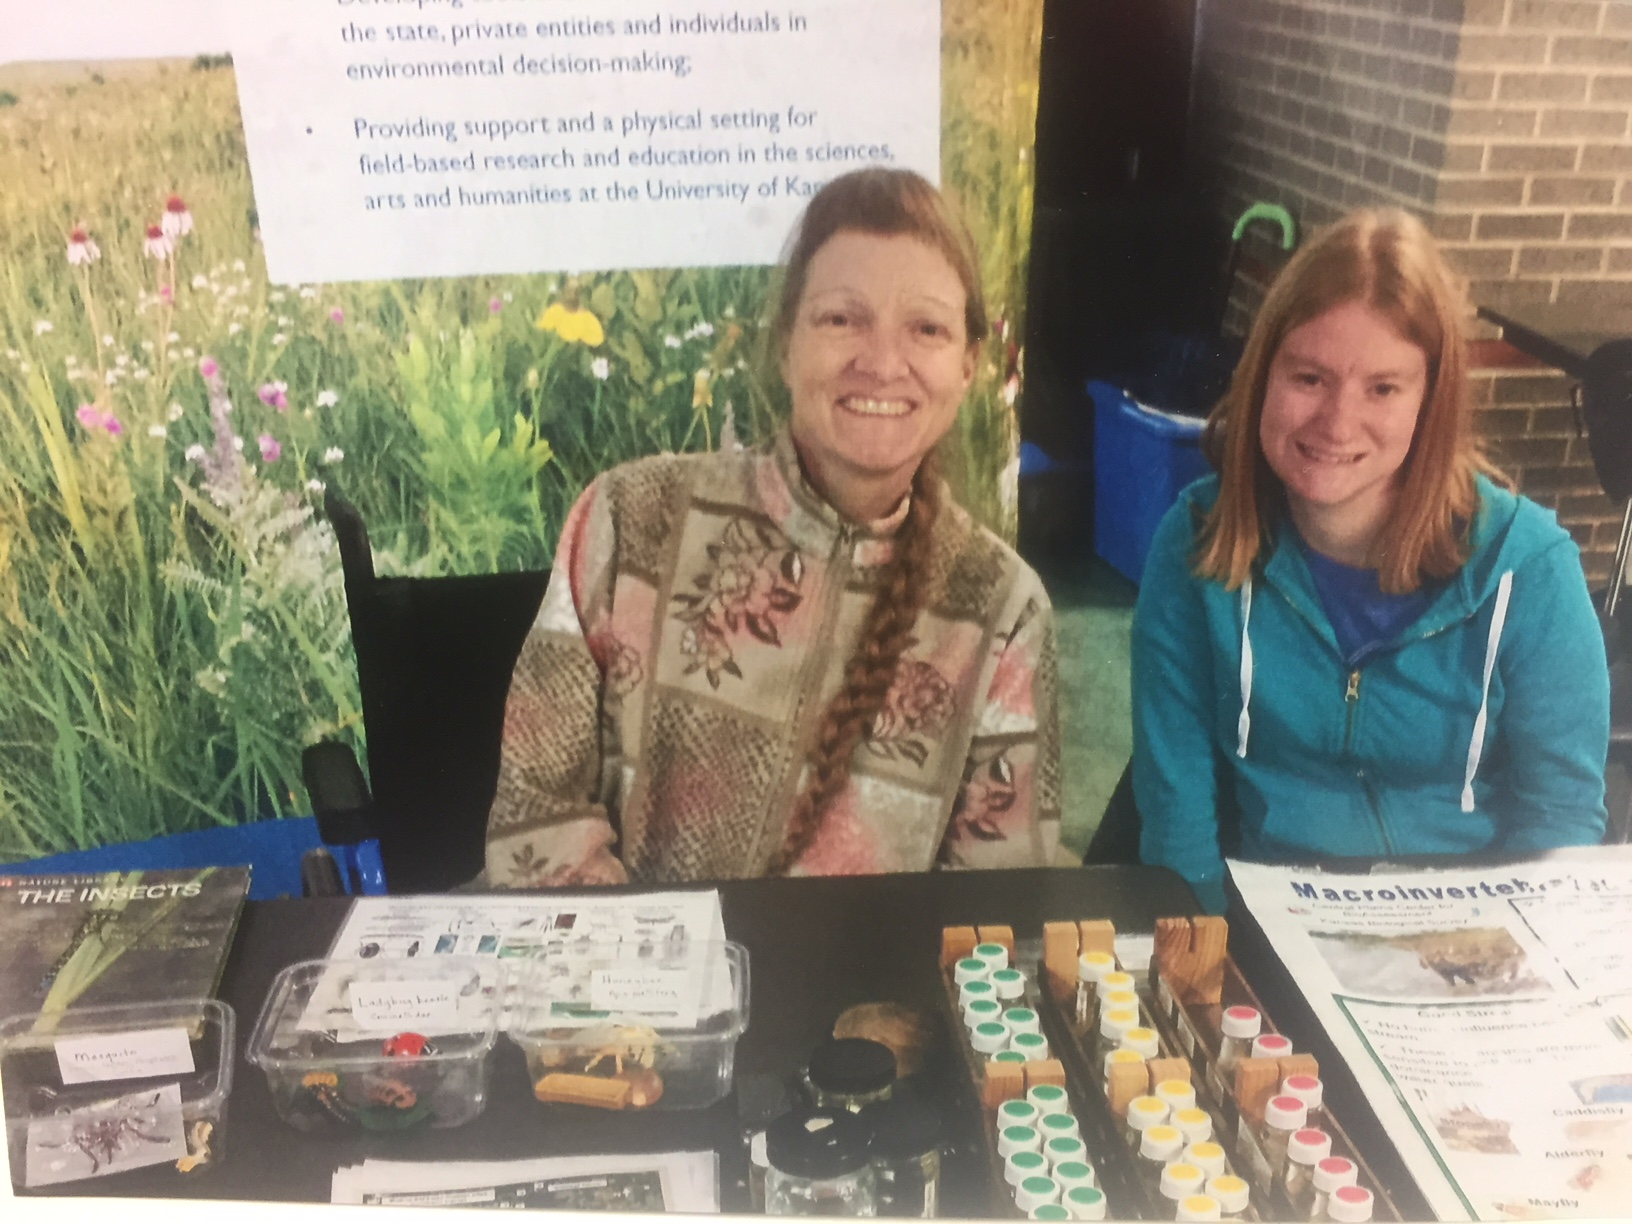 Jennifer Hollday teaches people about aquatic ecology at the 2012 Lawrence, KS Earthday celebration.